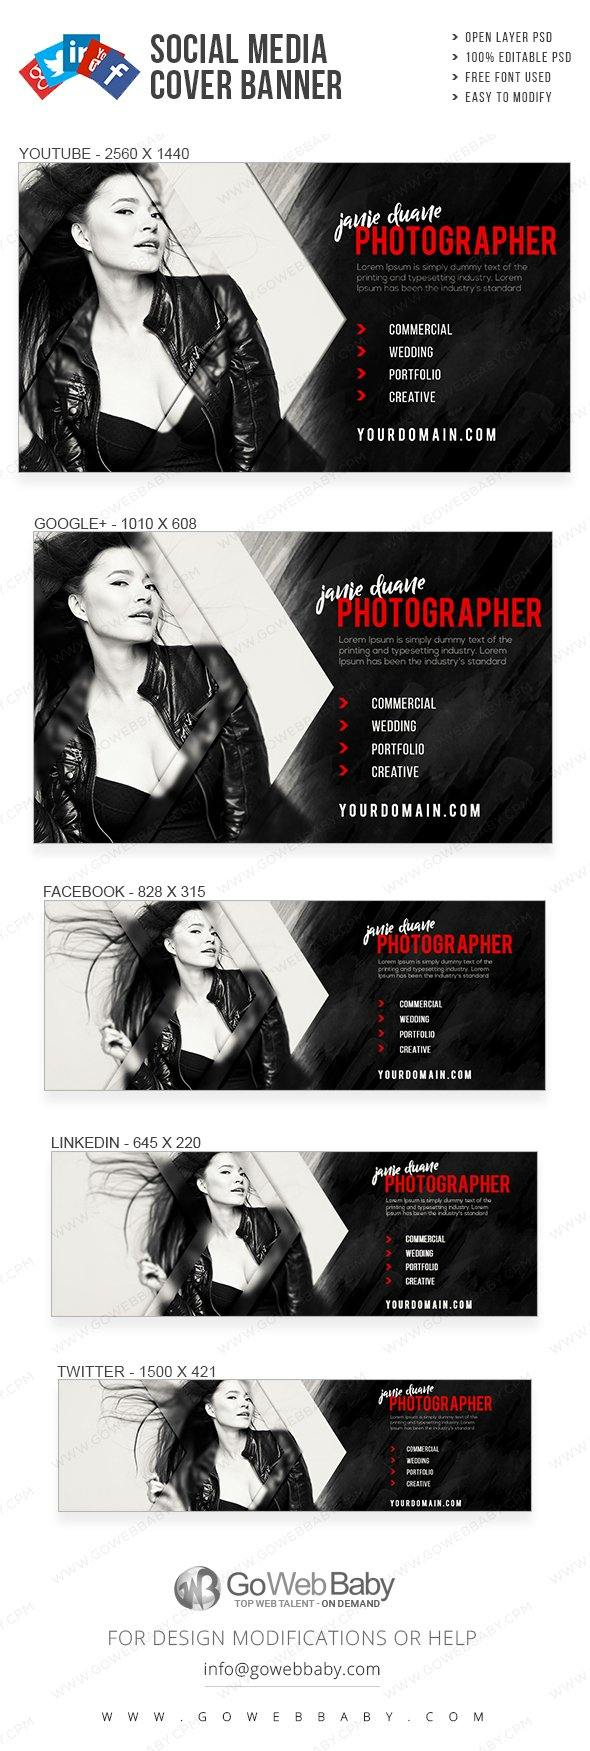 Social Media Cover Banner - Creative Photography For Website Marketing